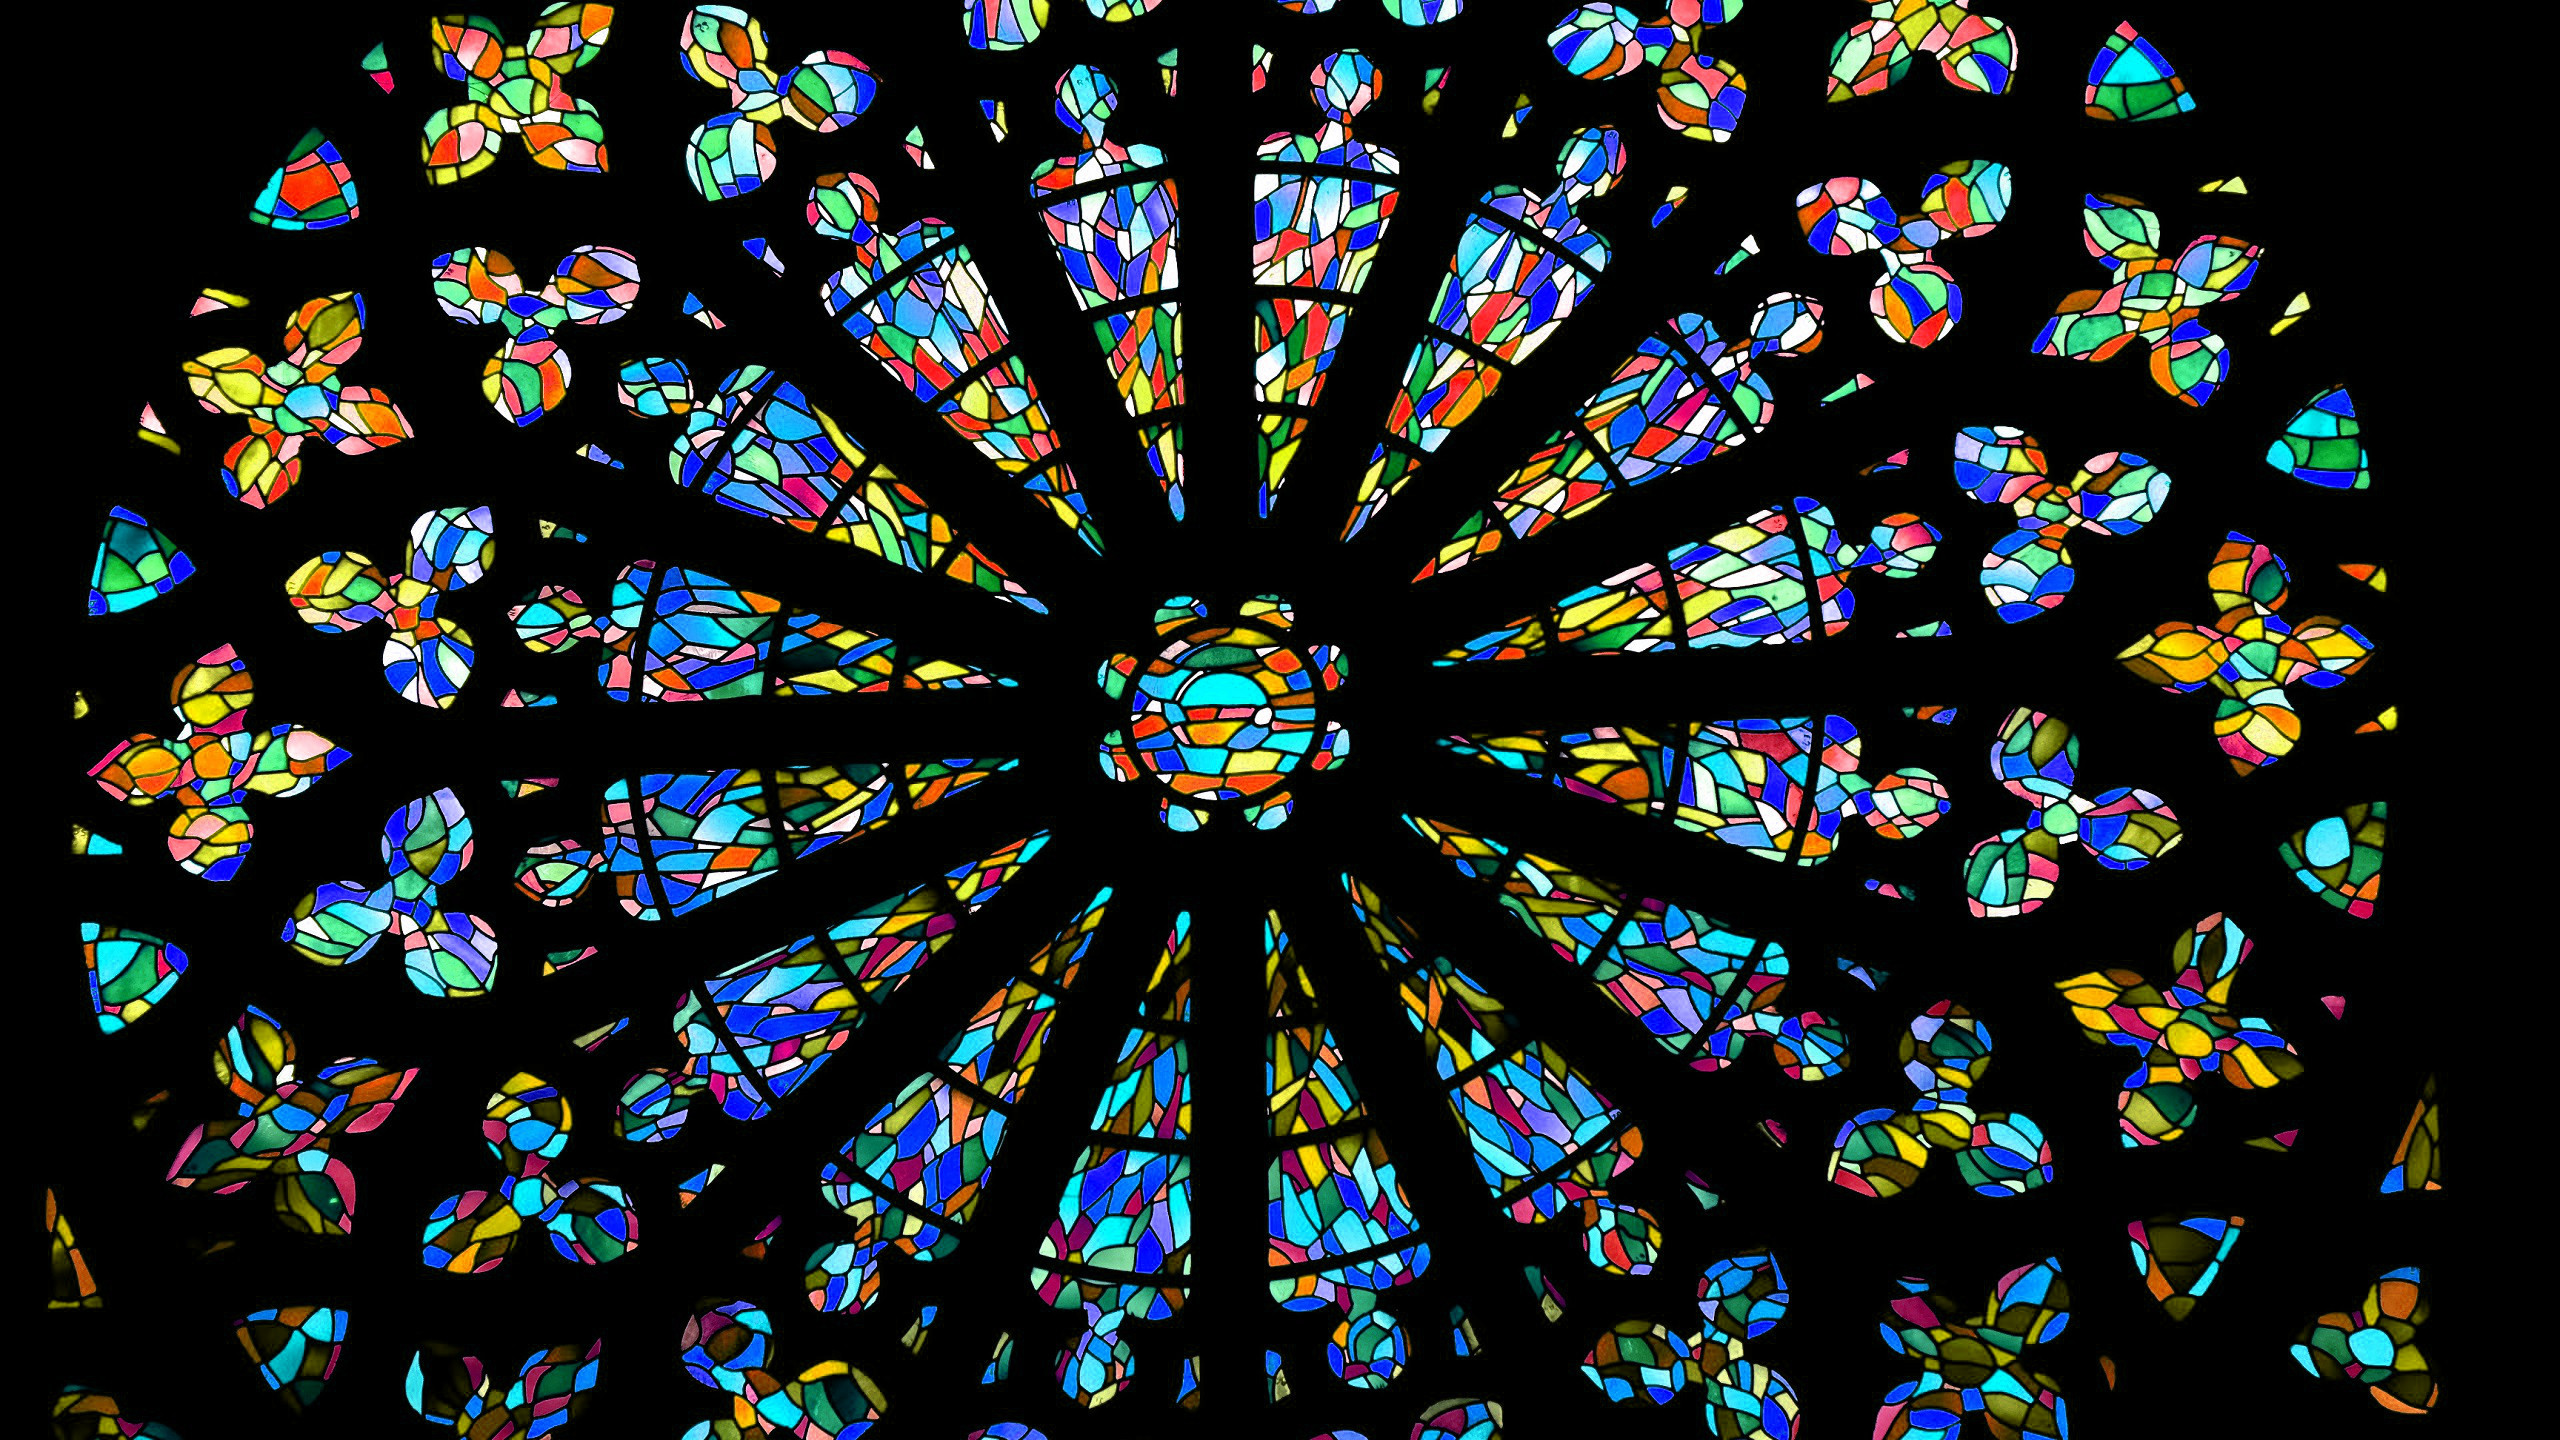 2560x1440 HD wallpaper church windows with stained glass